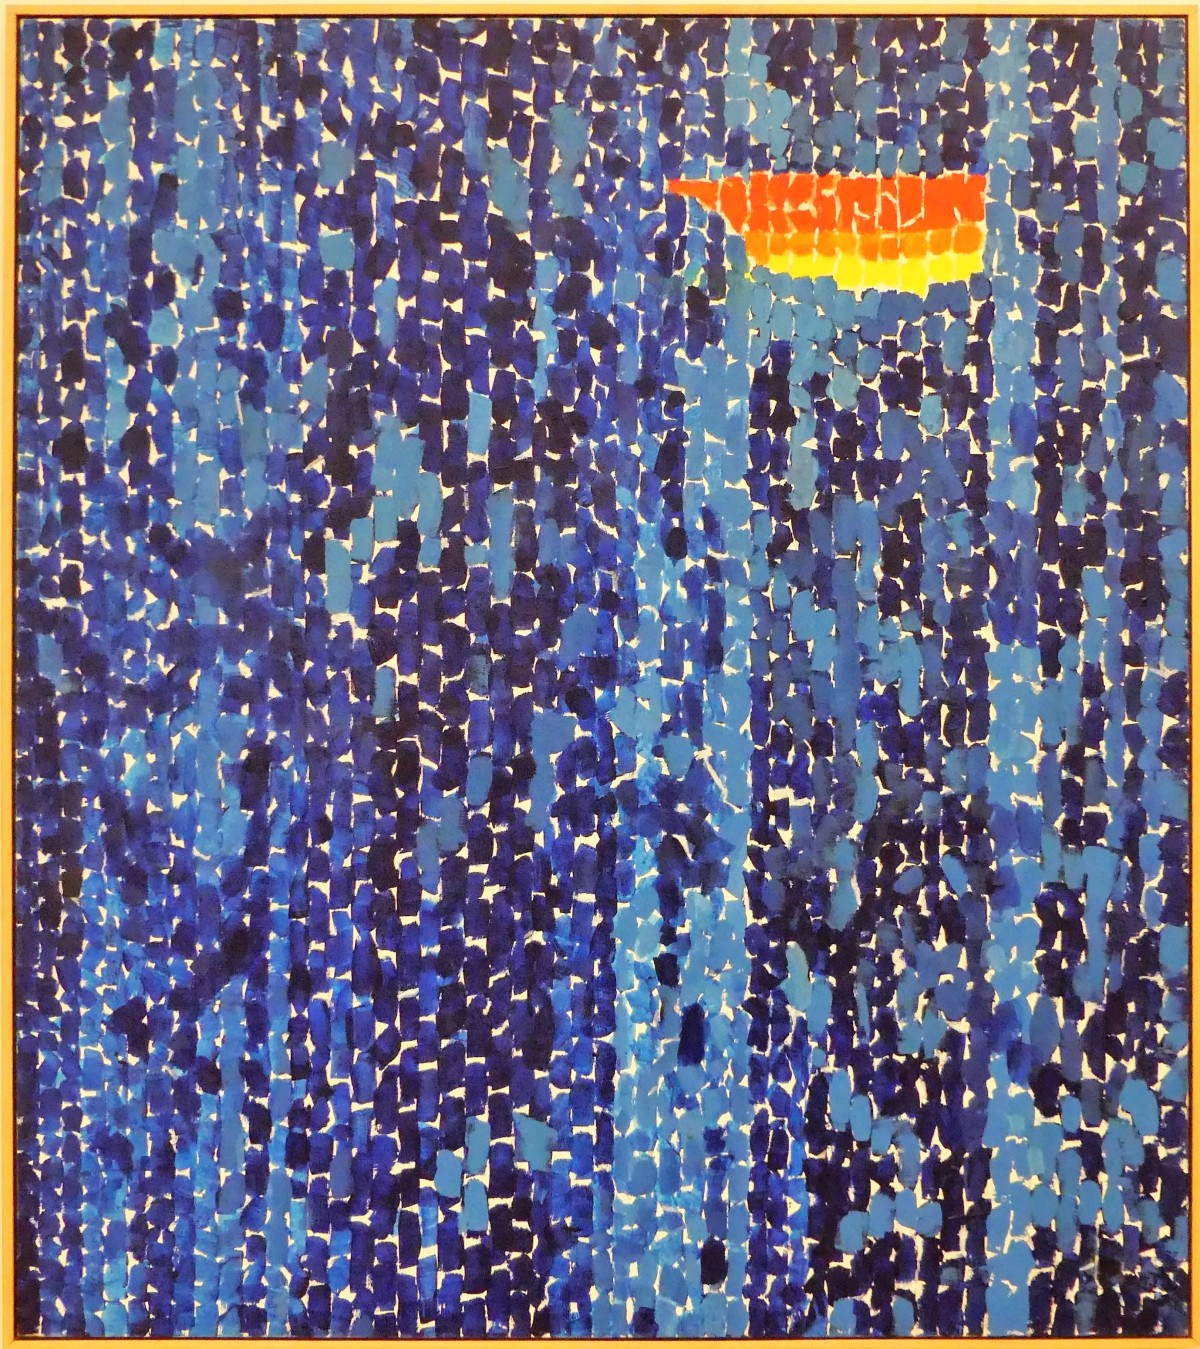 Alma Thomas's Starry Night and the Astronauts